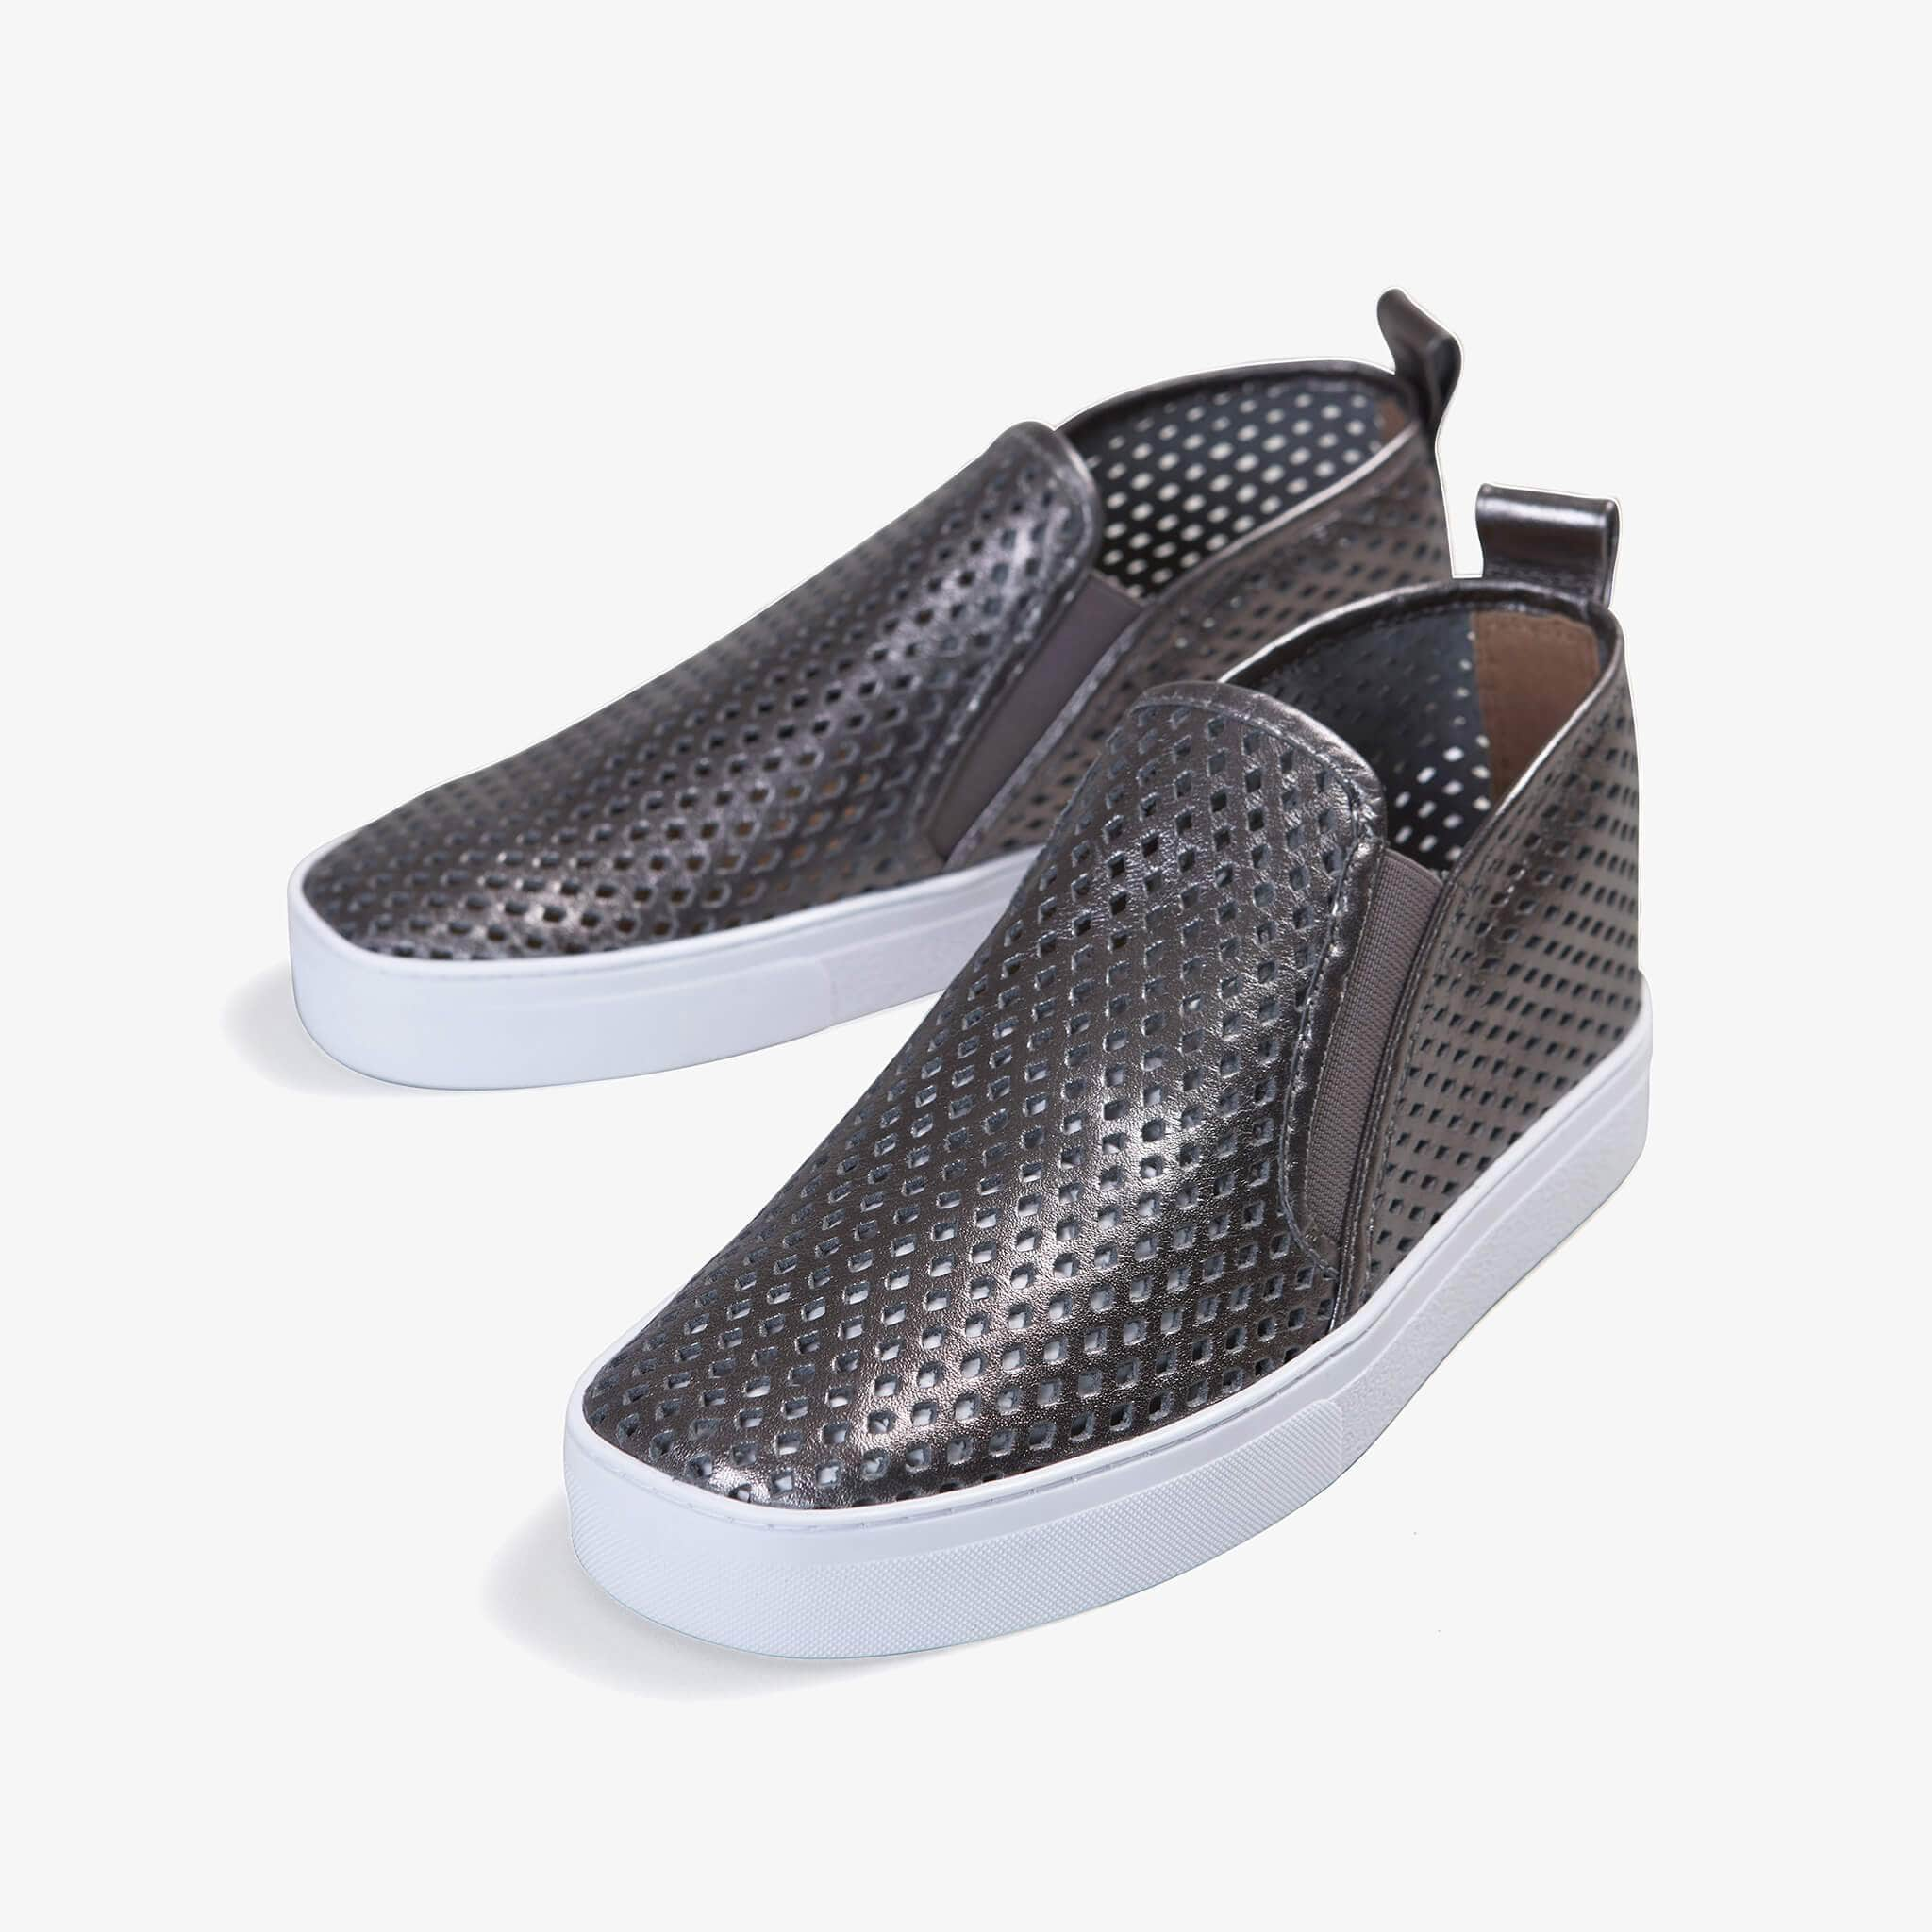 Jibs Mid Rise Space Gray Slip On Sneaker Bootie